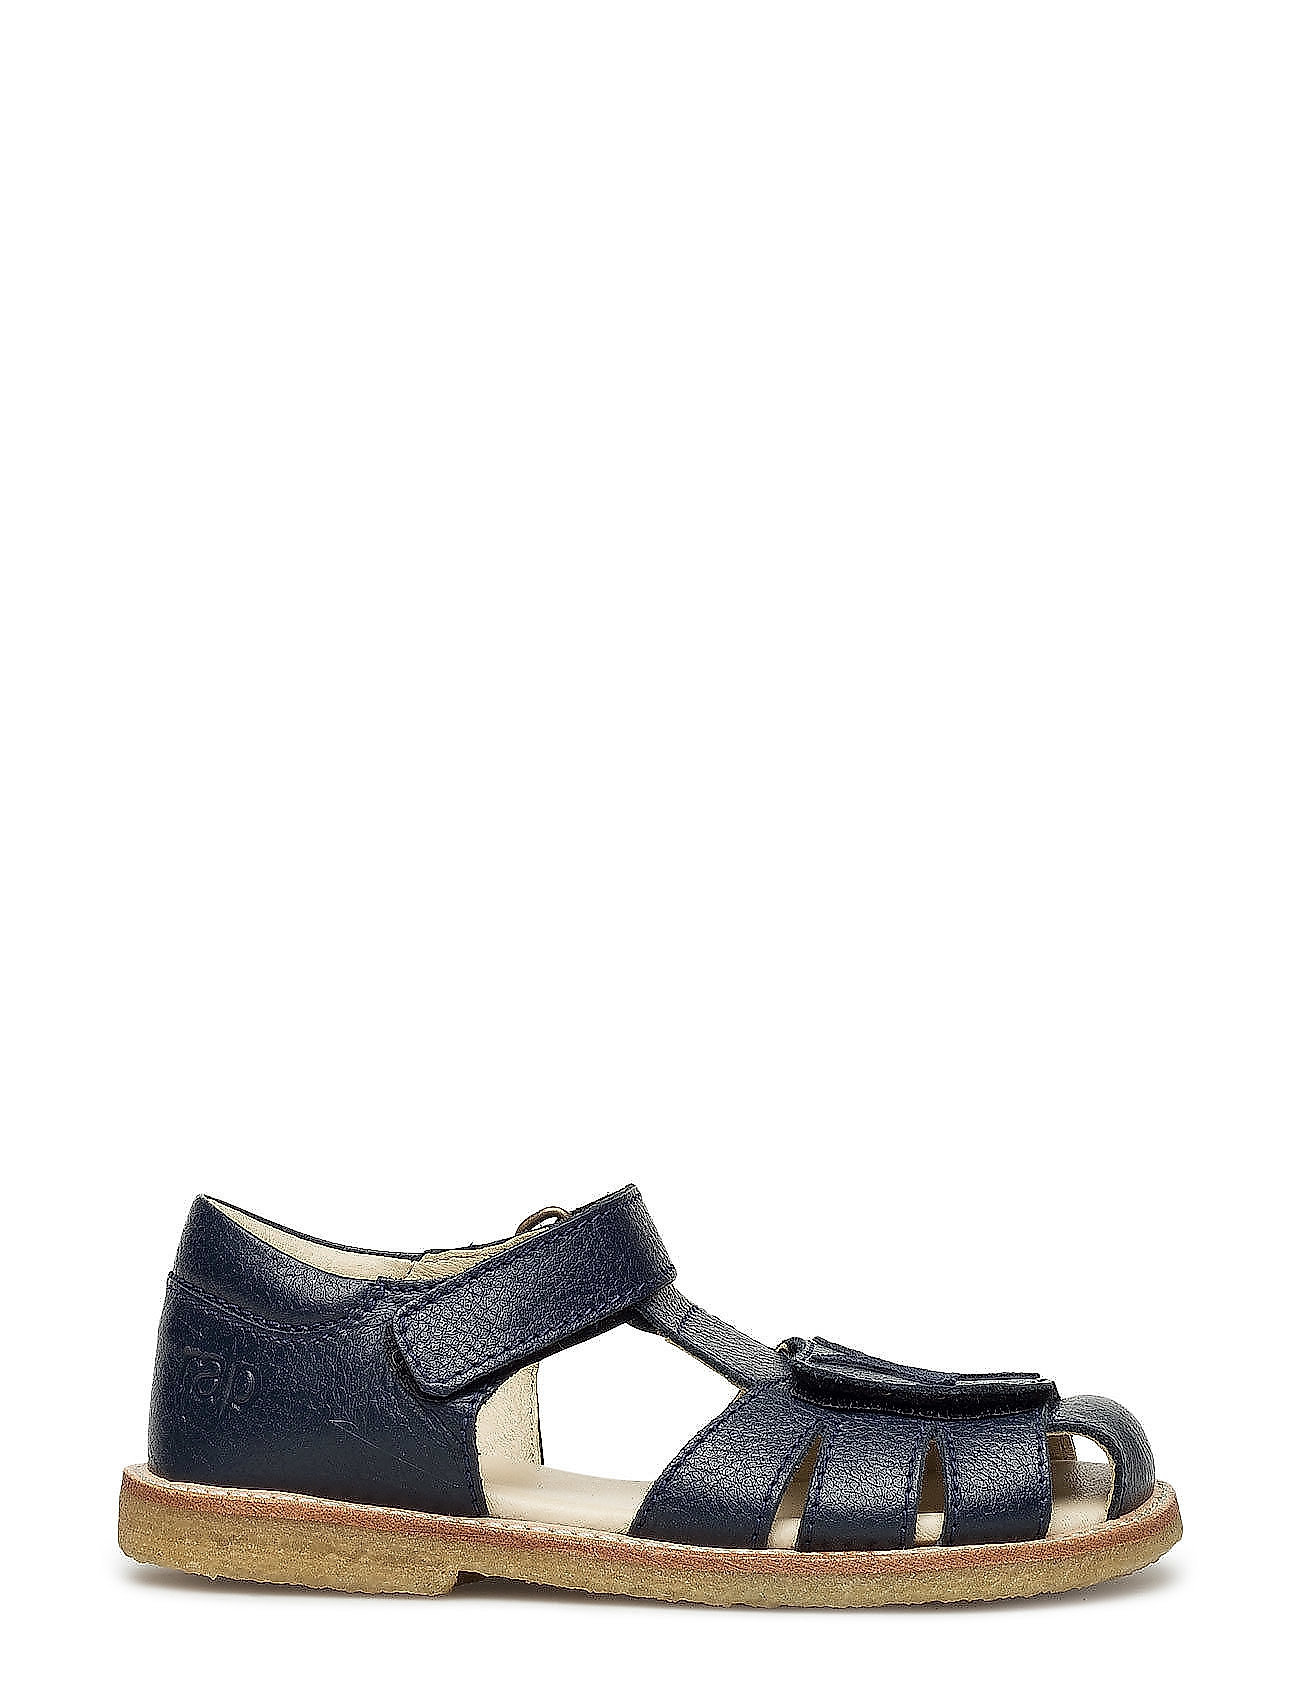 Arauto RAP - ECOLOGICAL CLOSED SANDAL, NARROW FIT - sandals - 15-navy - 1